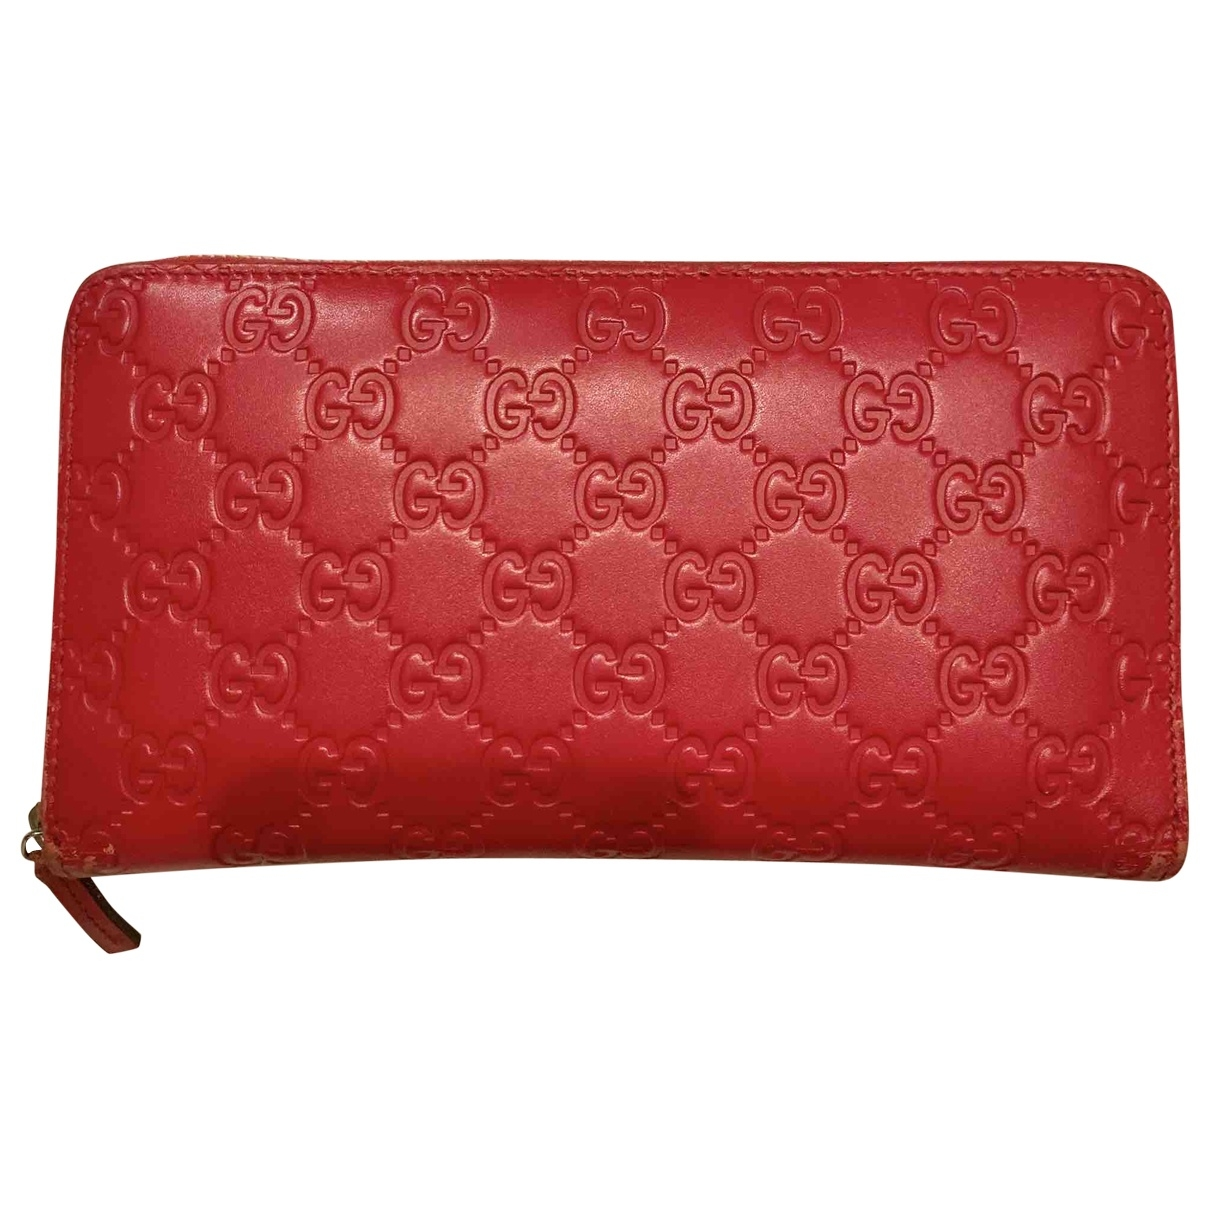 Gucci \N Red Leather wallet for Women \N